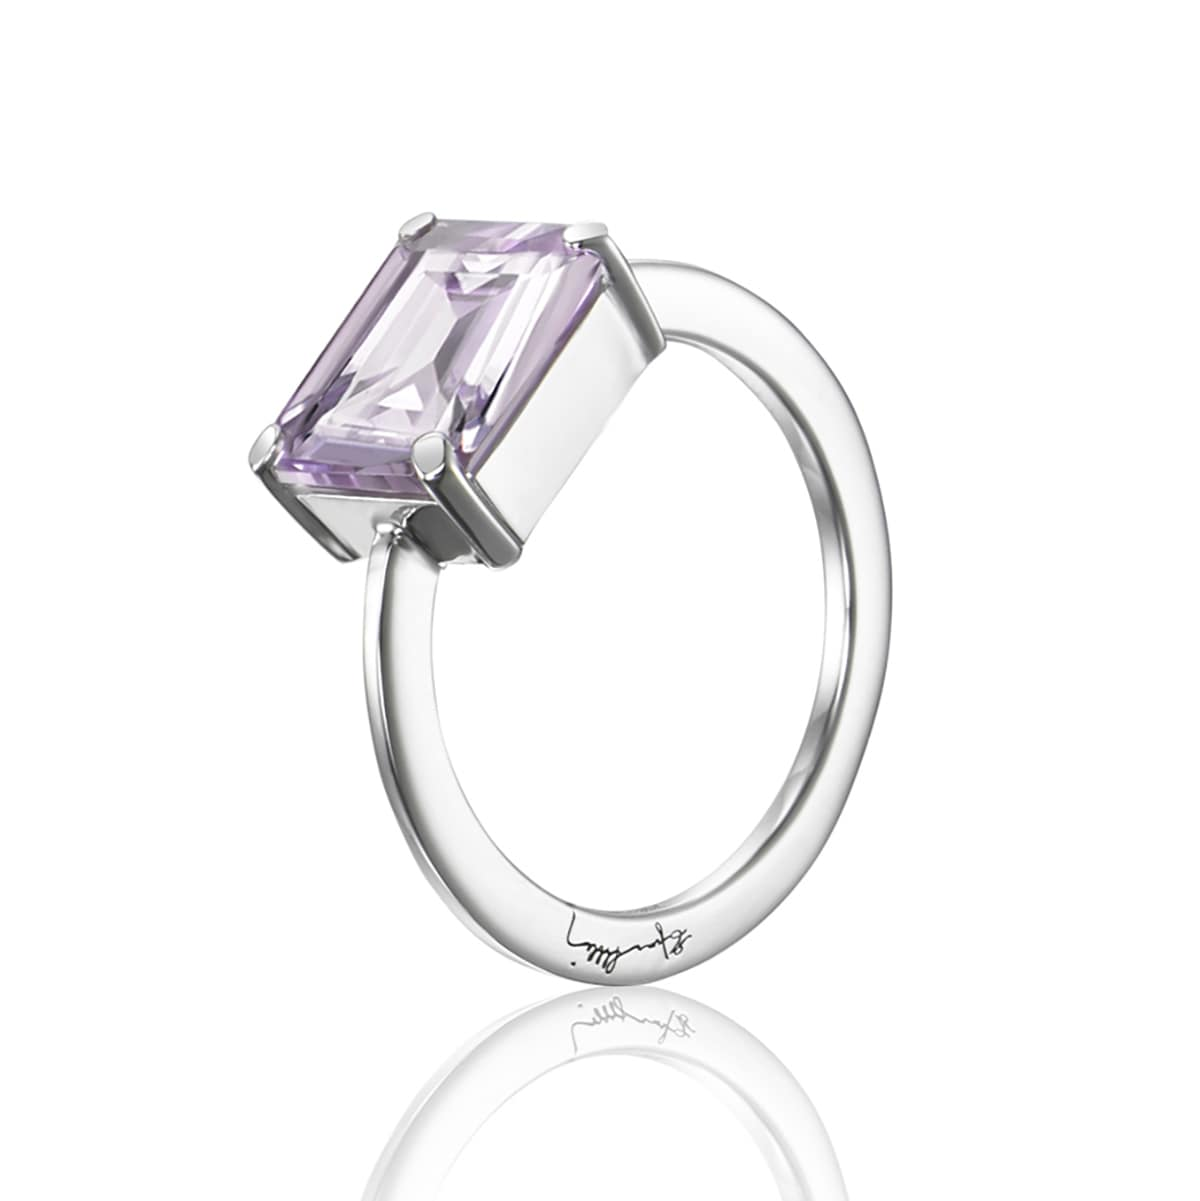 Efva_Attling_smycken_A Purple Dream Ring 13-100-01511(1)_hos_Jarl_Sandin